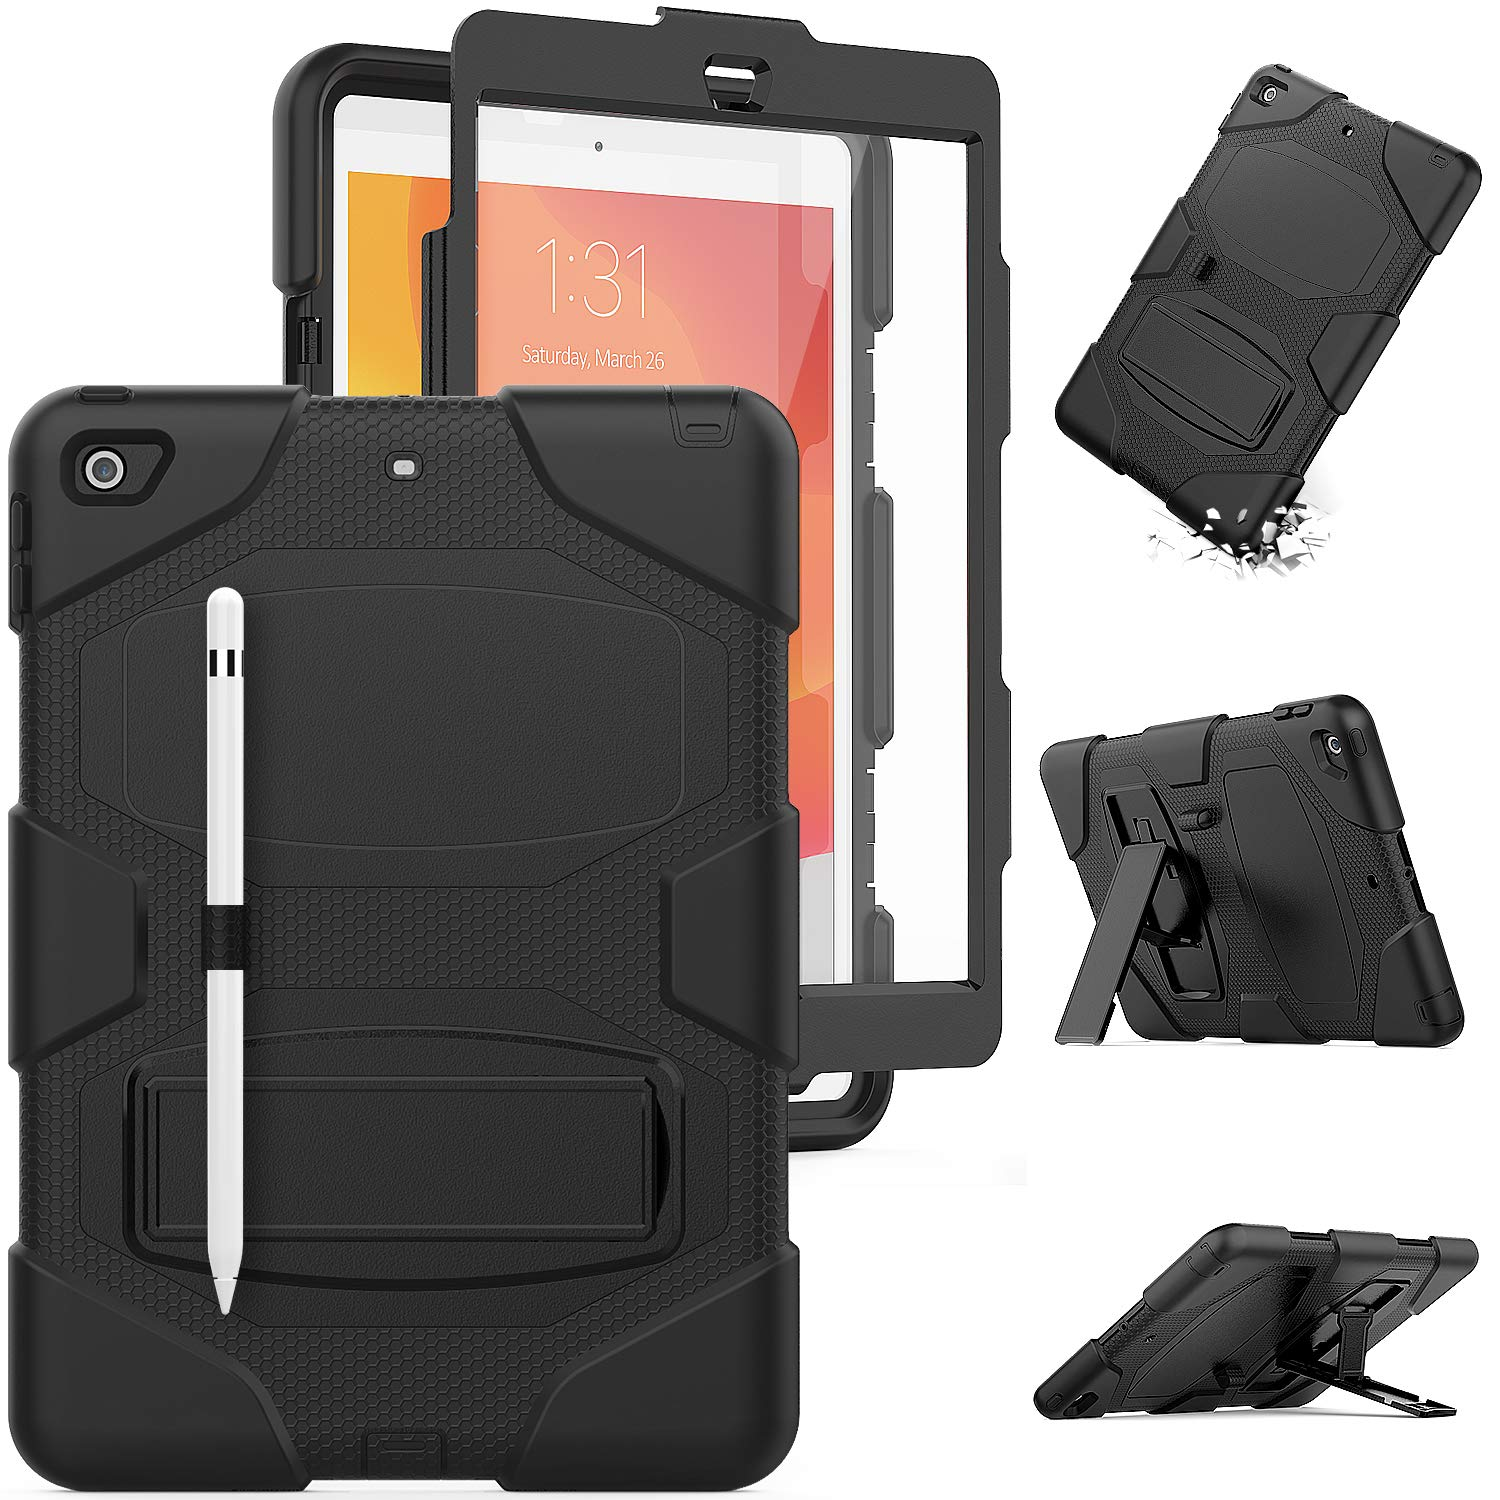 HXCASEAC iPad 7th Generation Case, [Full Body] Drop Protective Case [Built-in Kickstand] & [Built-in Screen Protector] & [Stylus Pencil Holder] for 2019 iPad 7 Model A2197 A2198 A2200 (Black)